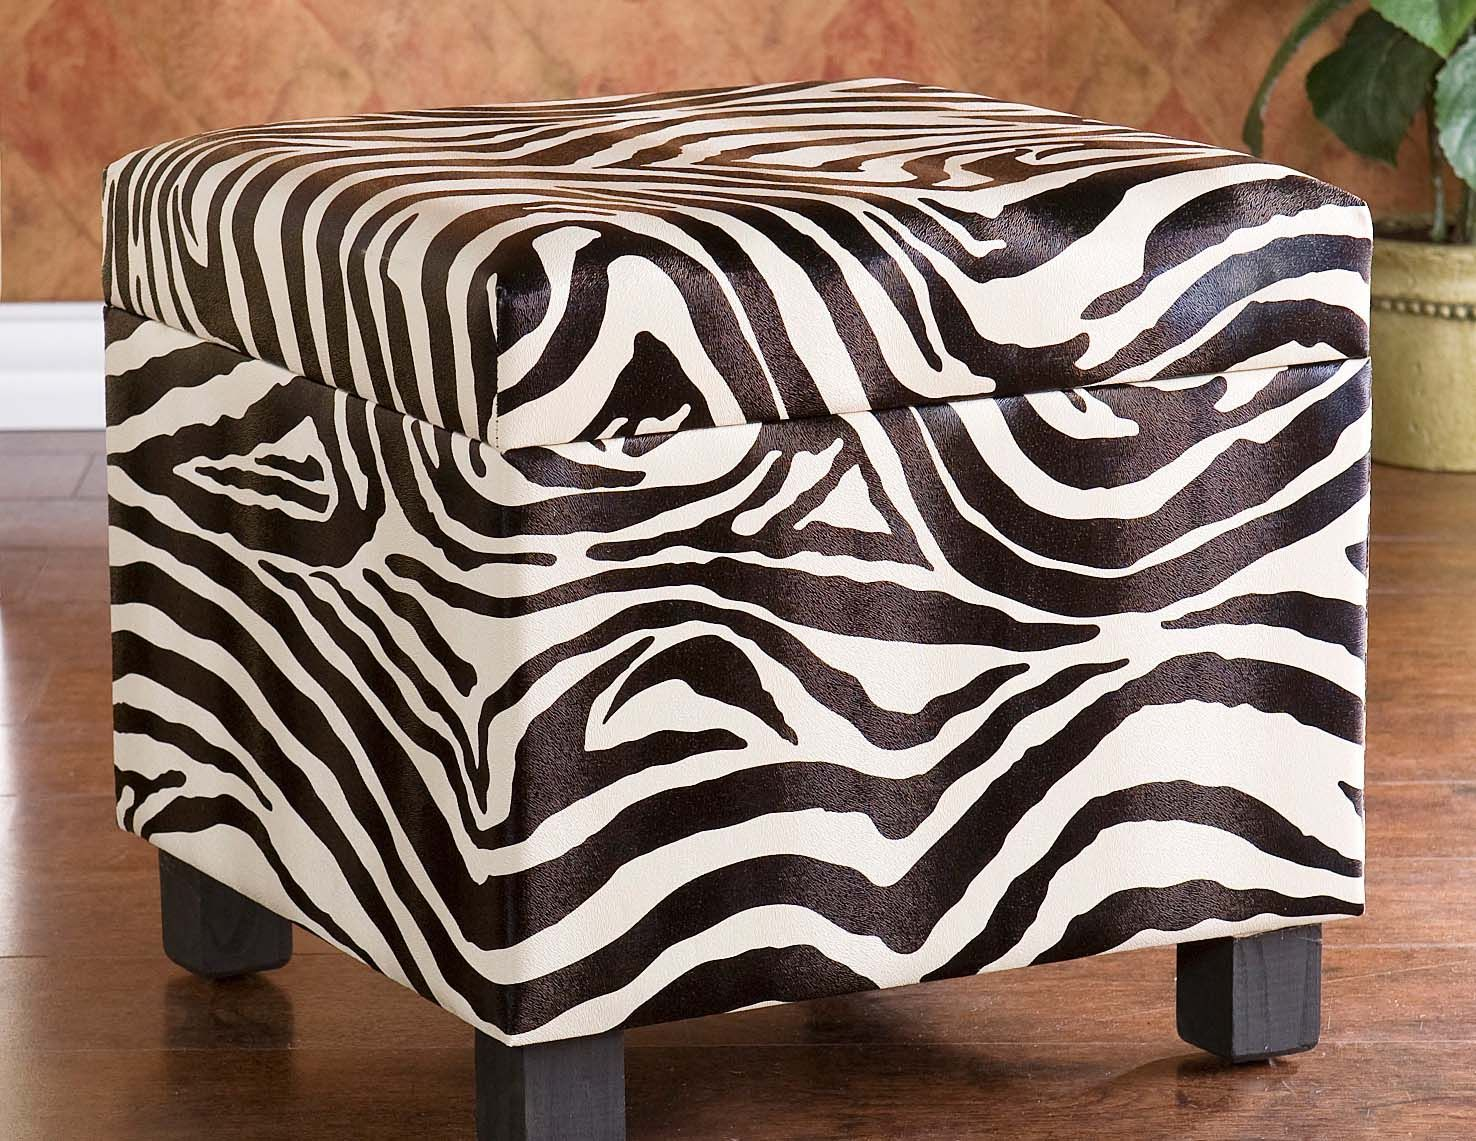 Holly U0026 Martin Zebra Safari Storage Ottoman  Www.ubuyfurniture.com/holly Martin Zebra Storage Ottoman.html #holly  #martin #zebra #print #safari #storage ...